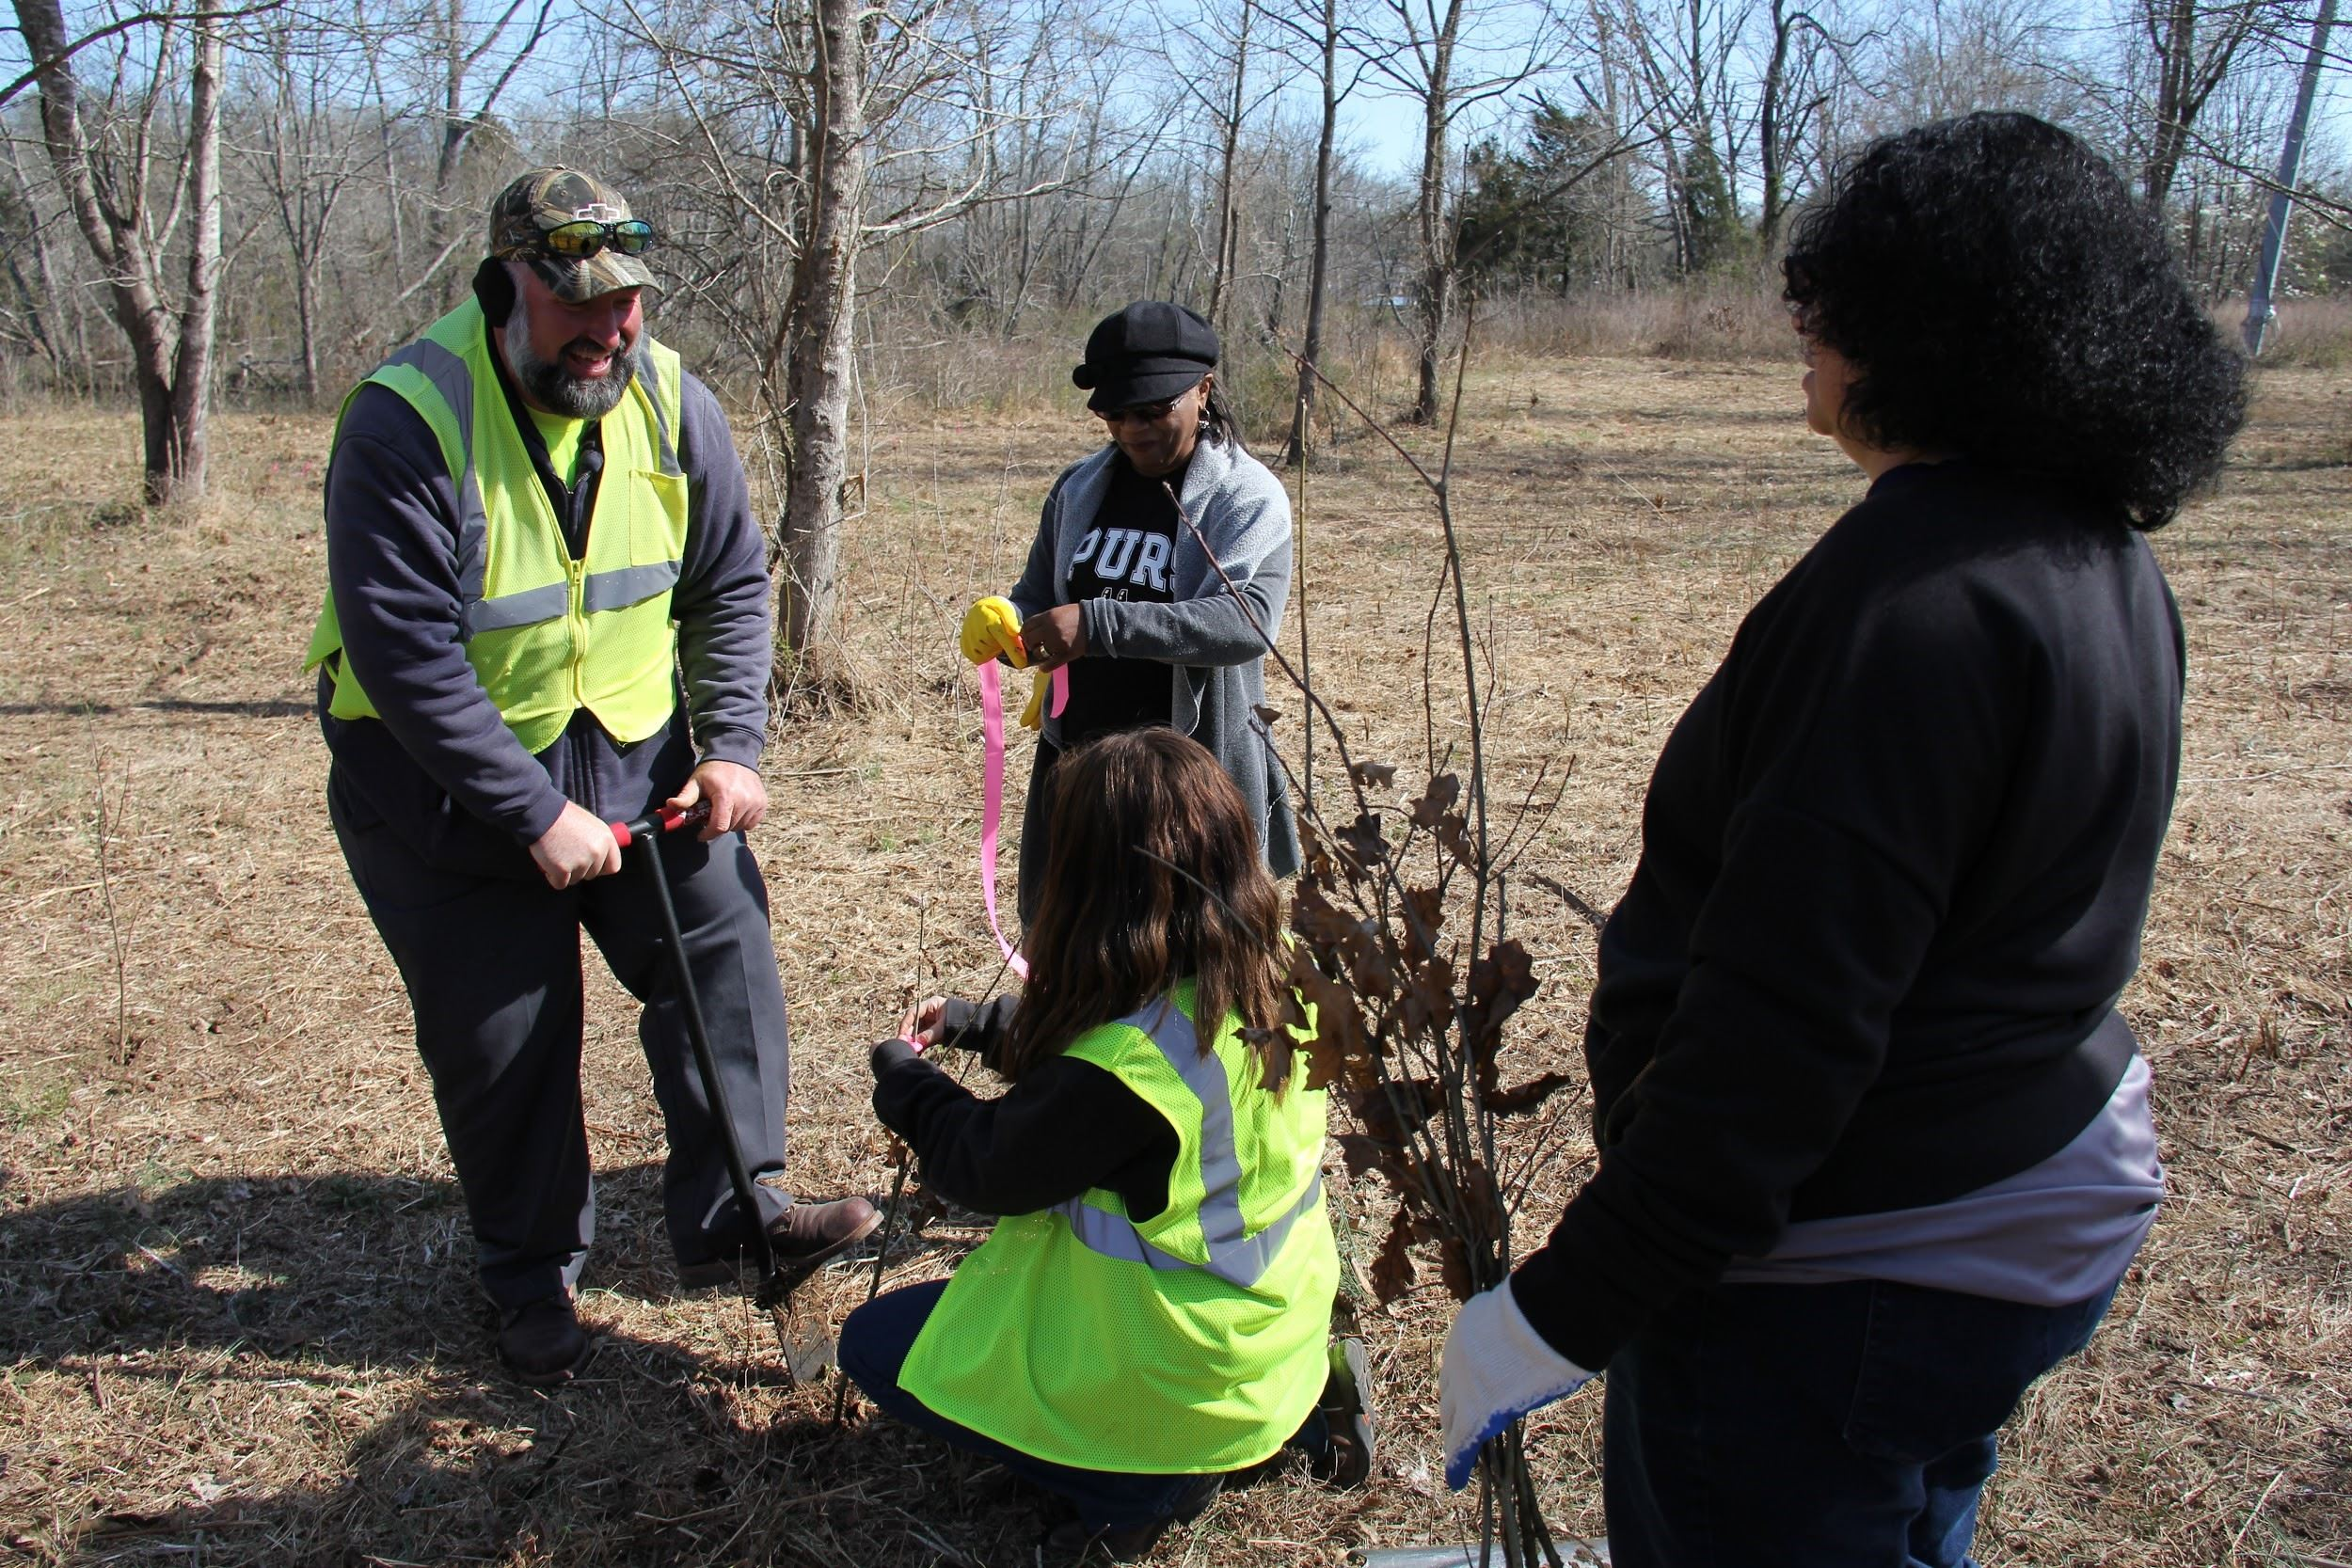 Arbpr Day Tree Planting, four people in woods planting trees